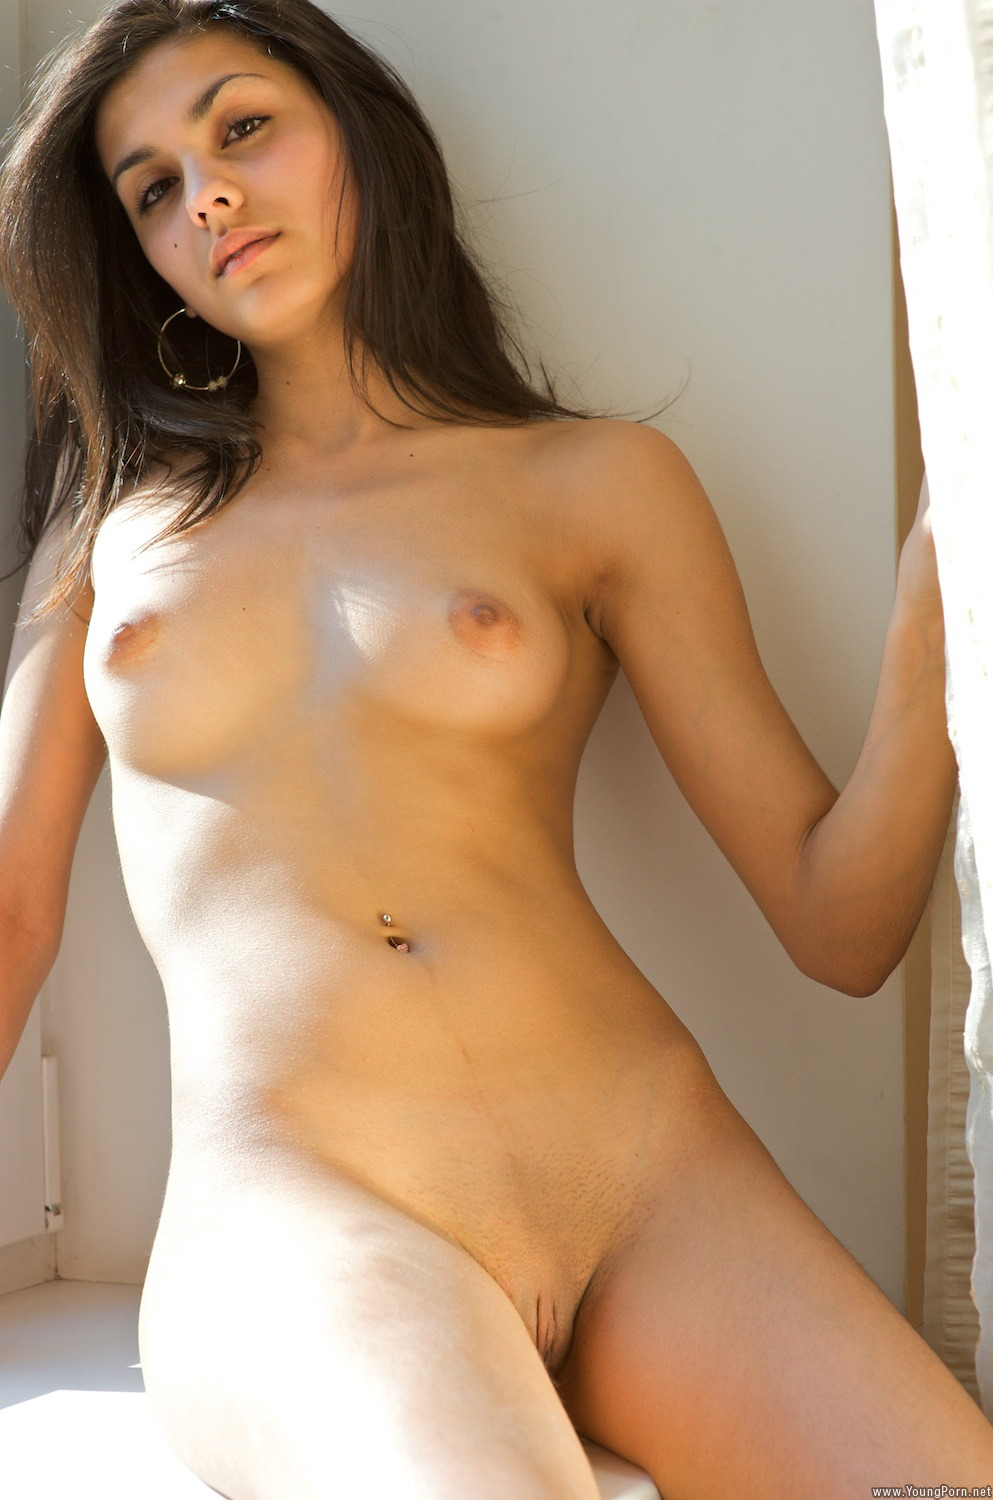 The sexiest nude girls